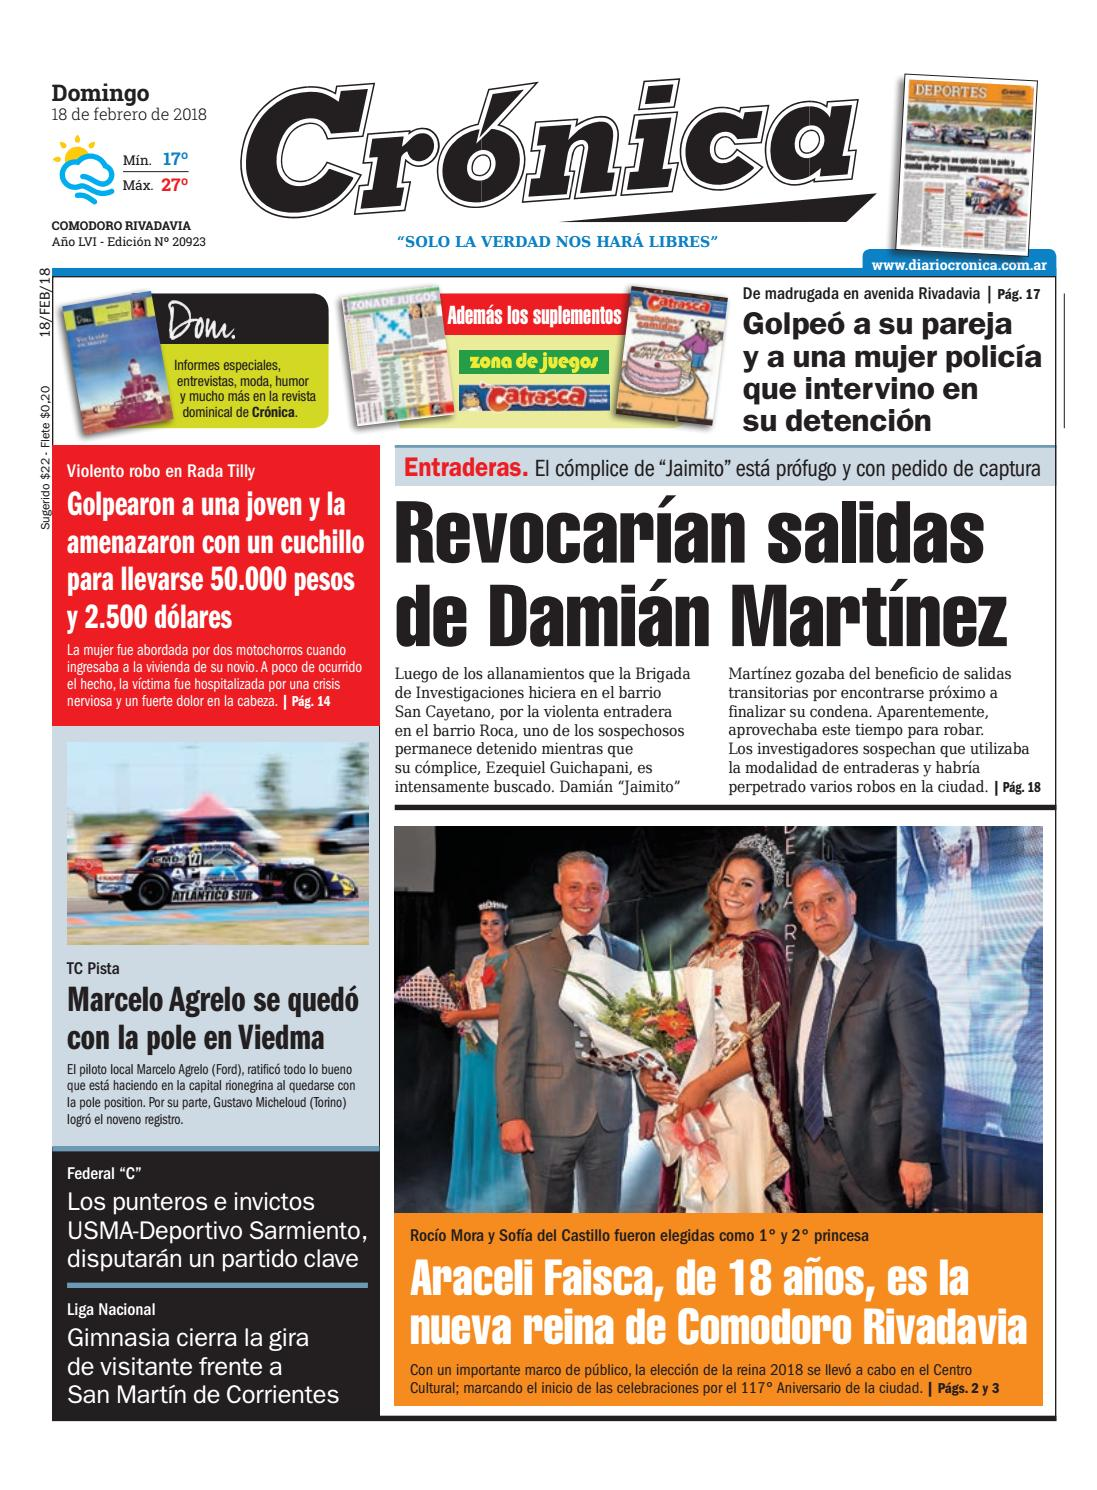 7a46be004a517bf6fb0115645aaa1b93 by Diario Crónica - issuu